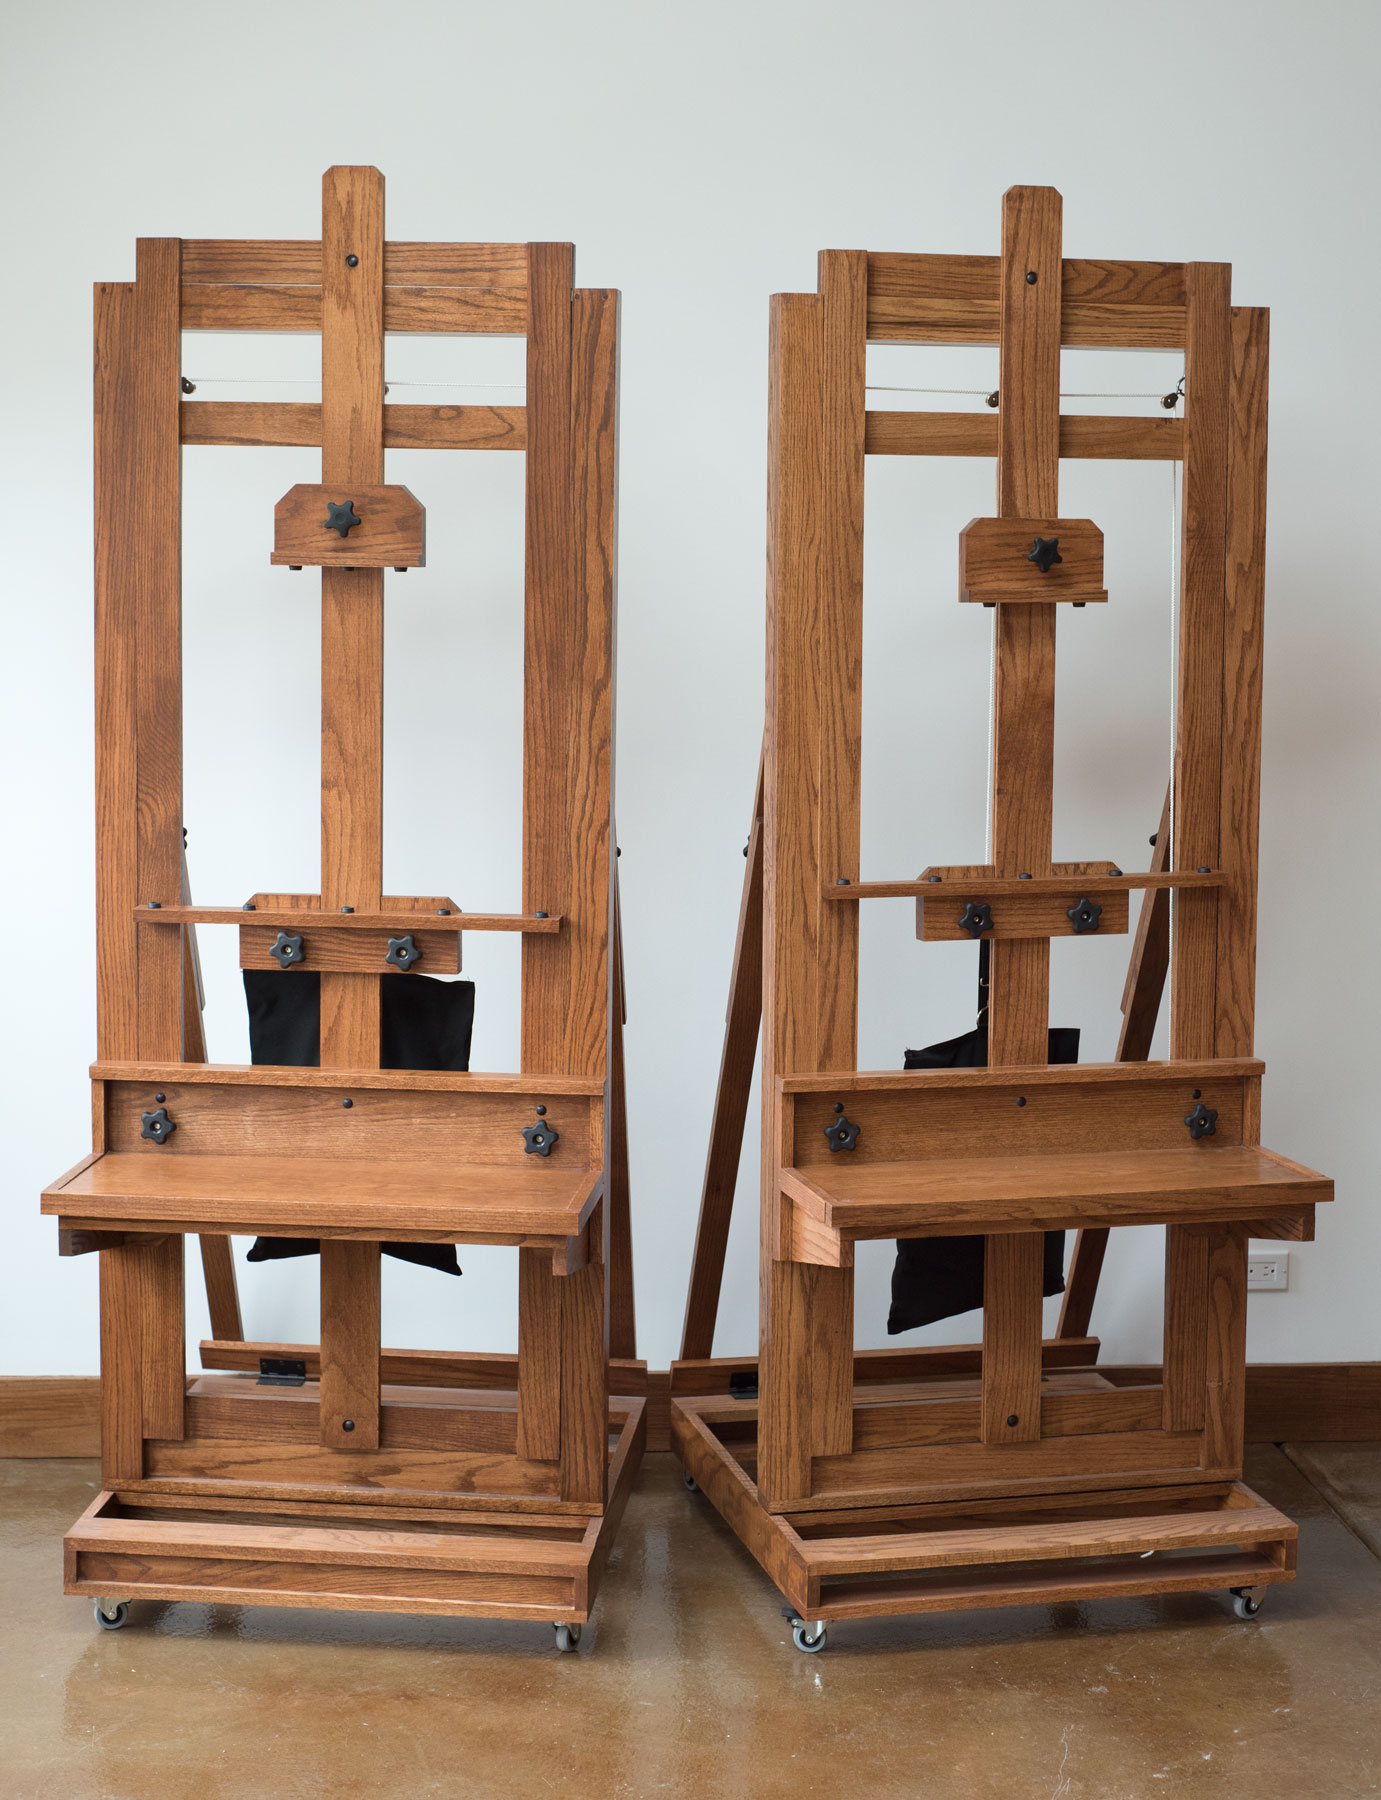 Easels Building The Perfect Easel Reasonably Easily And Affordably